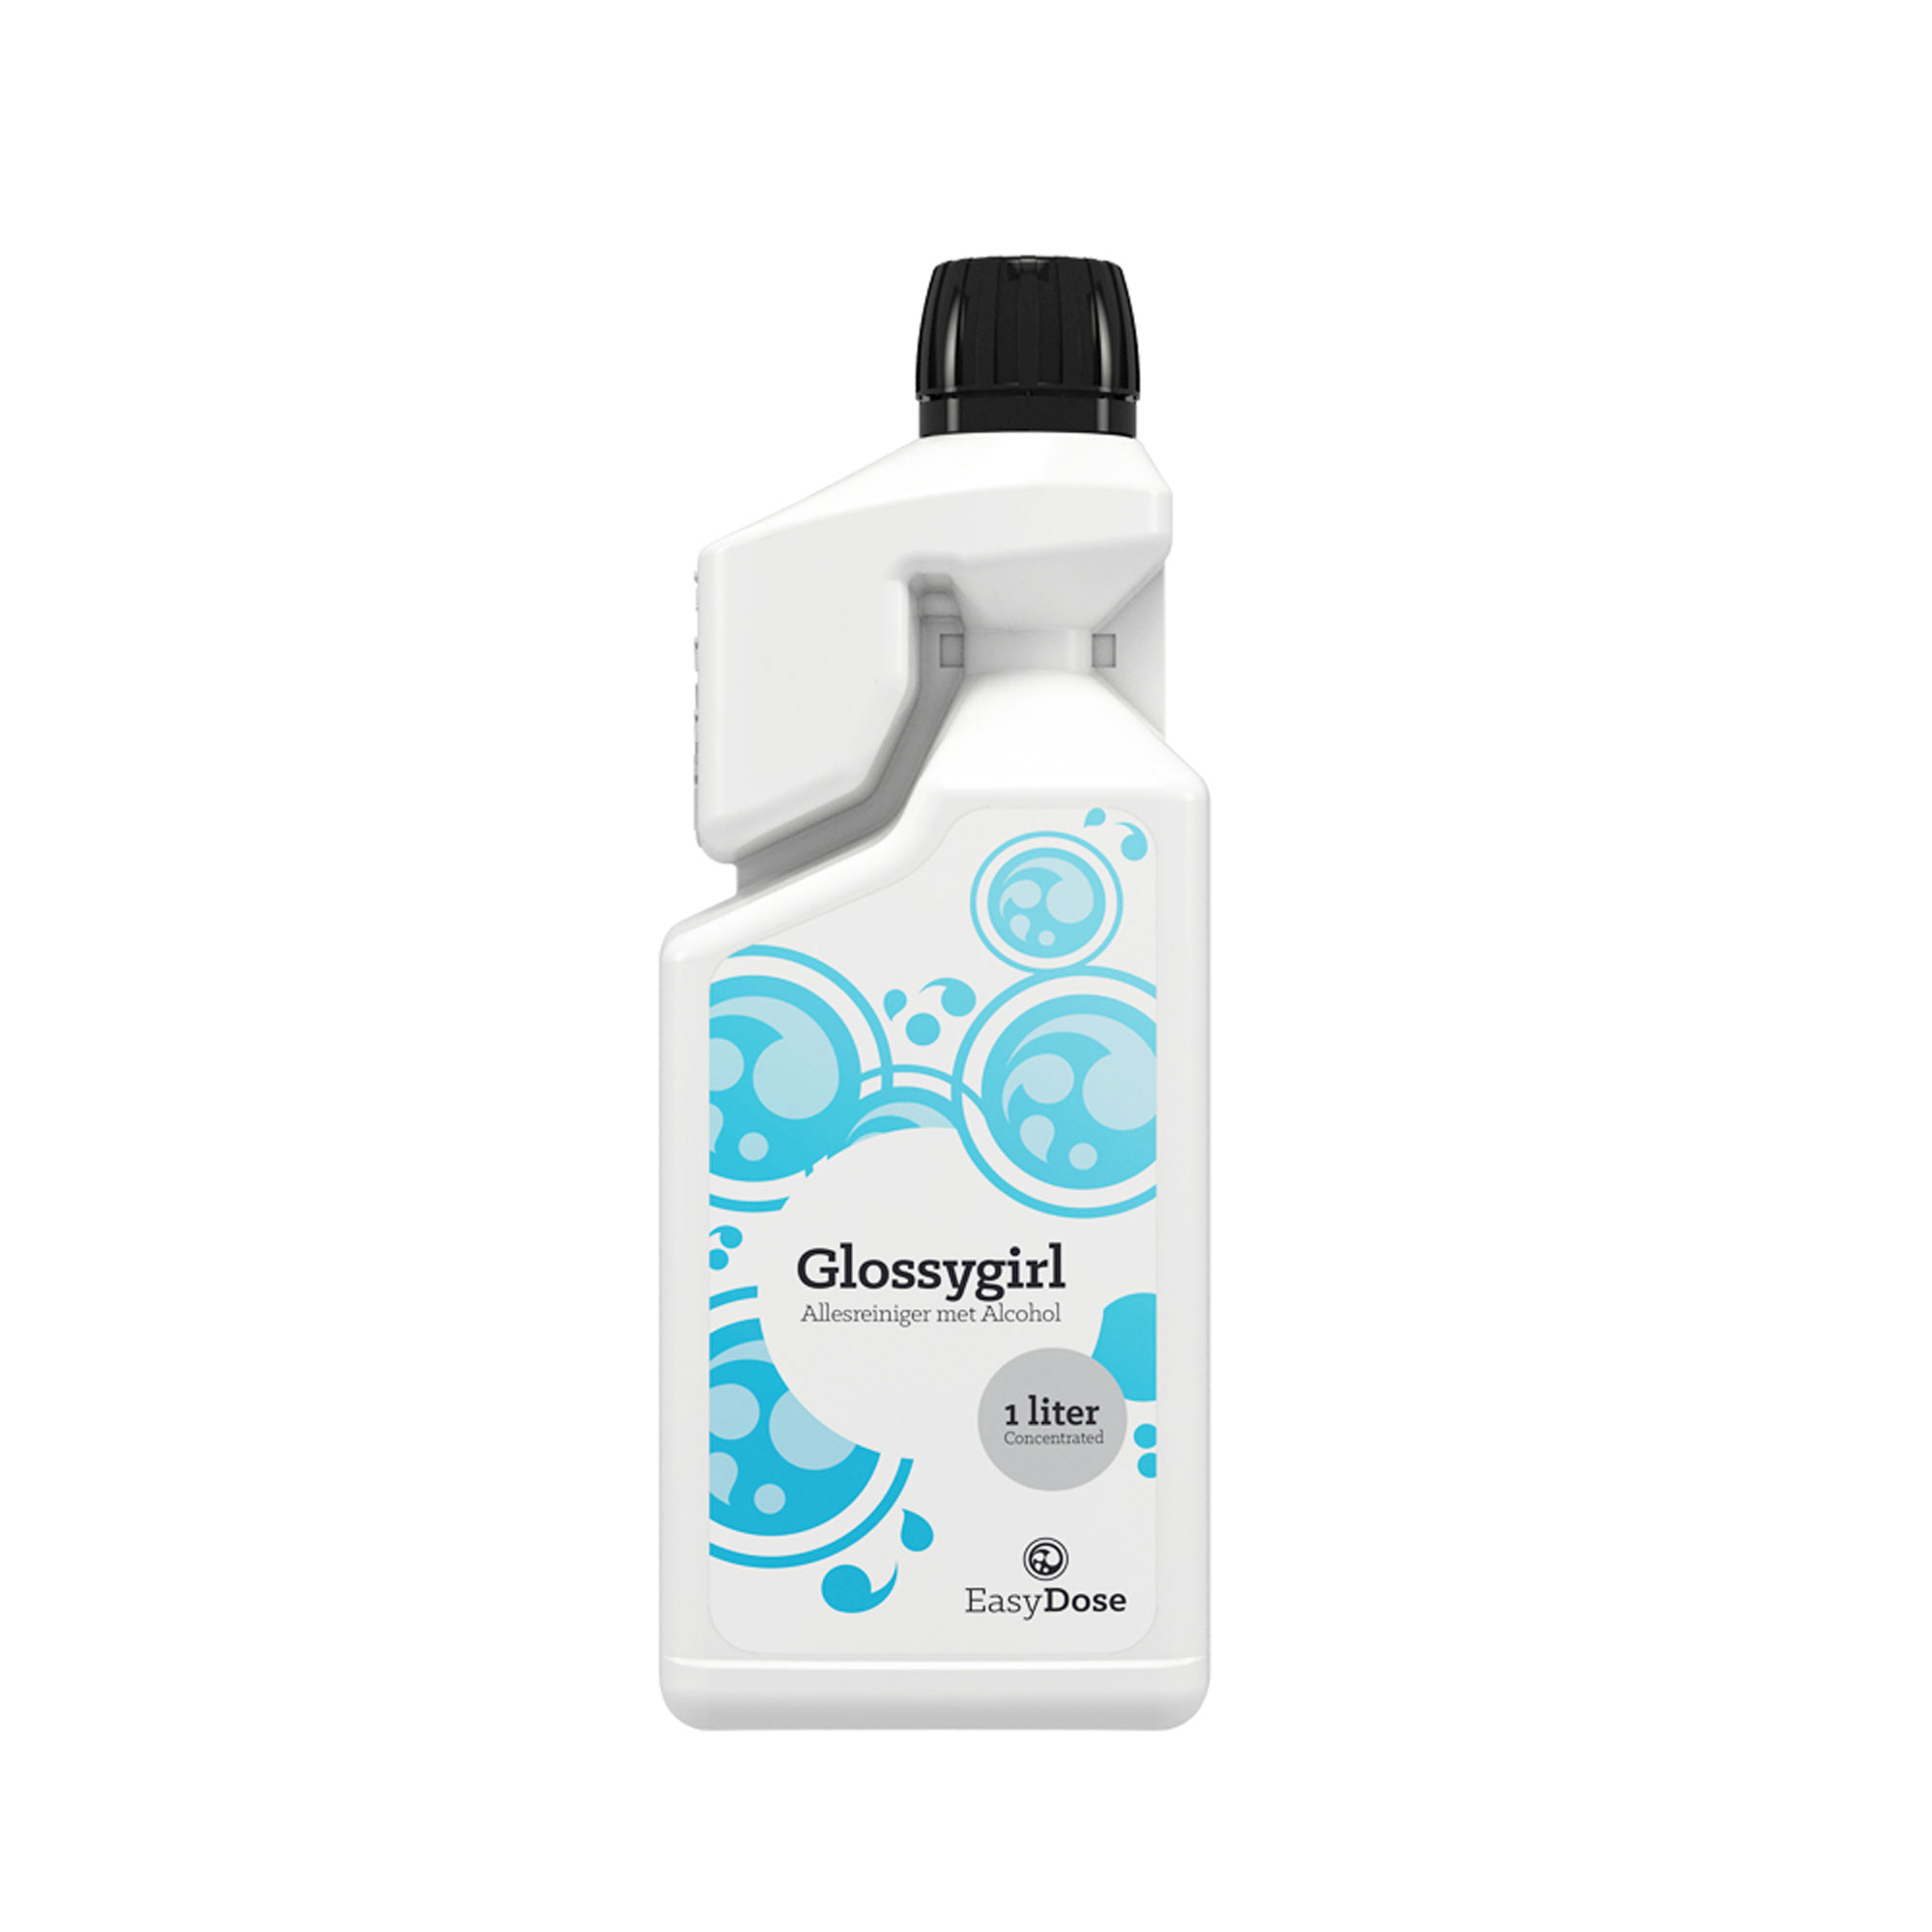 1010125_01 Glossygirl interieurreiniger met alcohol conc. 1L